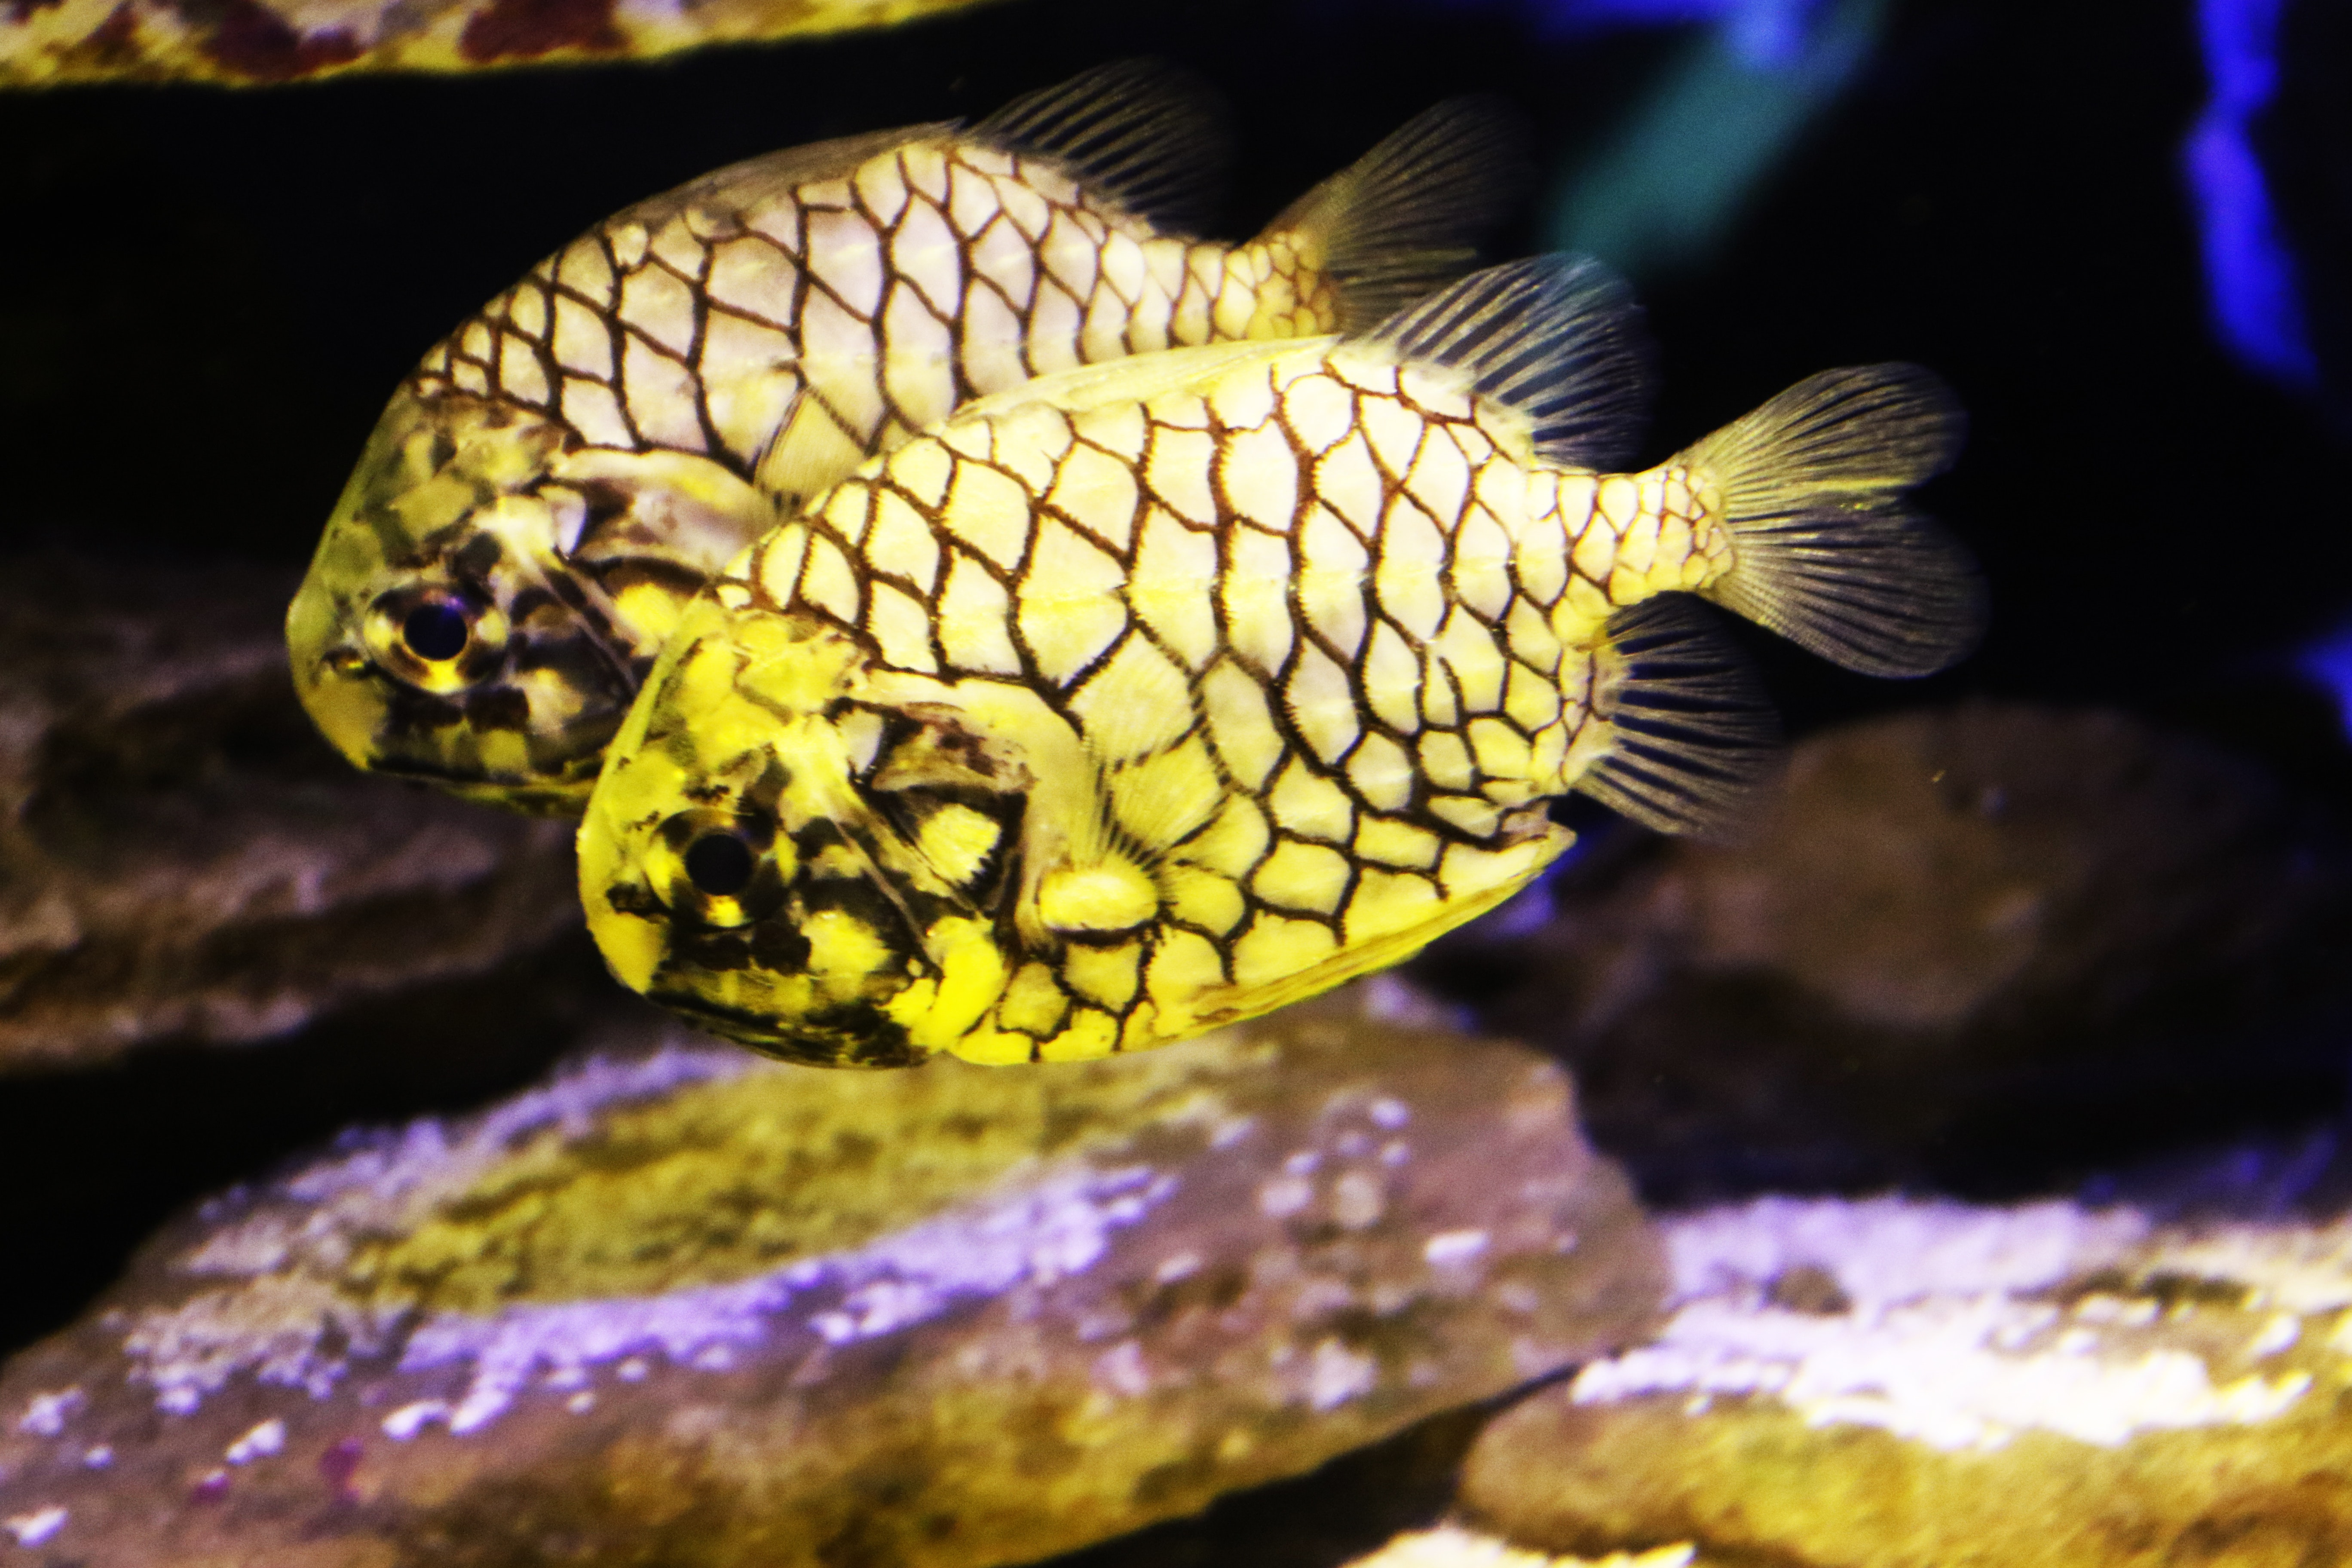 Two yellow exotic fishes in the sea photo